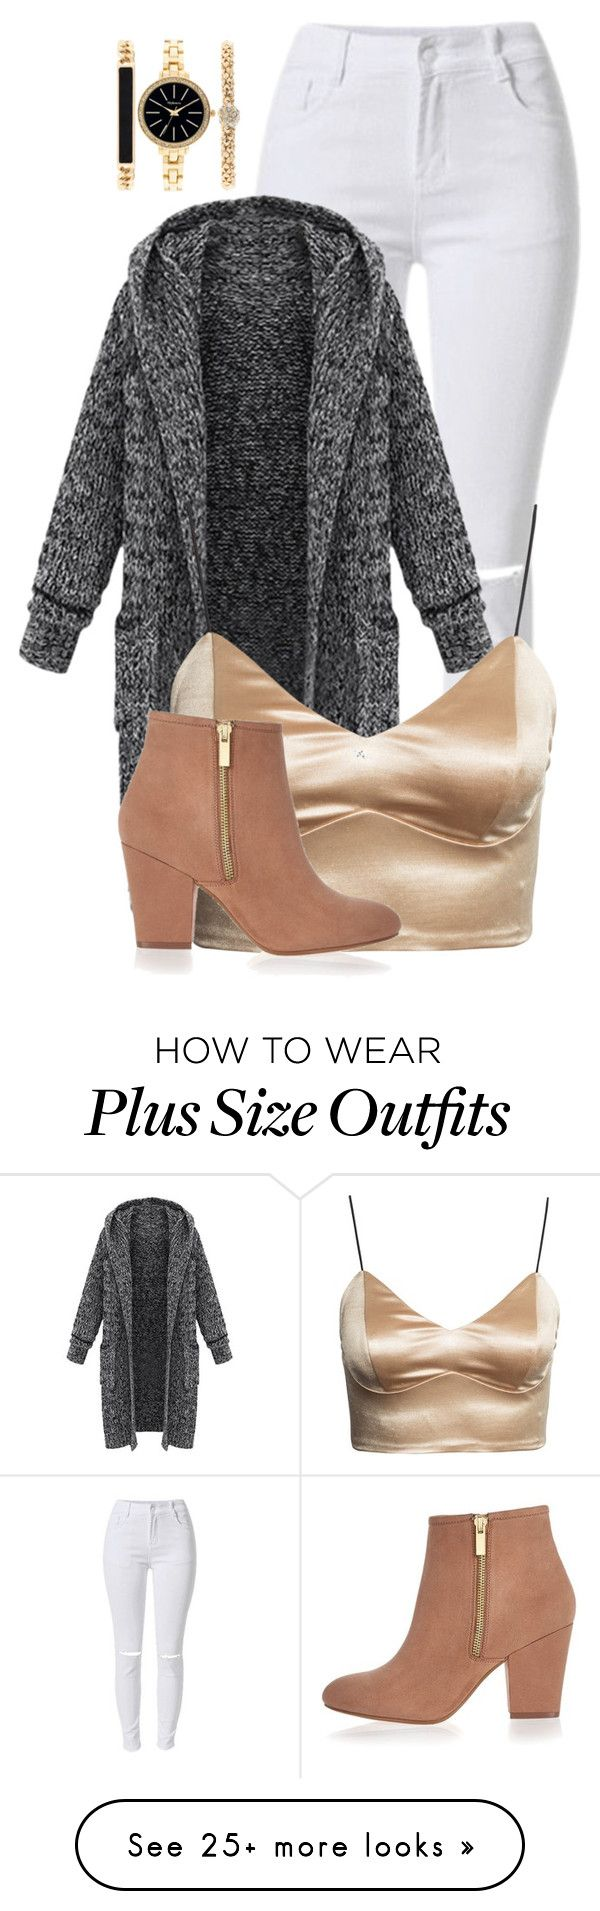 """""""// She Stay Classy And Smart //"""" by cookiesncreamluv on Polyvore featuring Style & Co., River Island, women's clothing, women's fashion, women, female, woman, misses and juniors"""